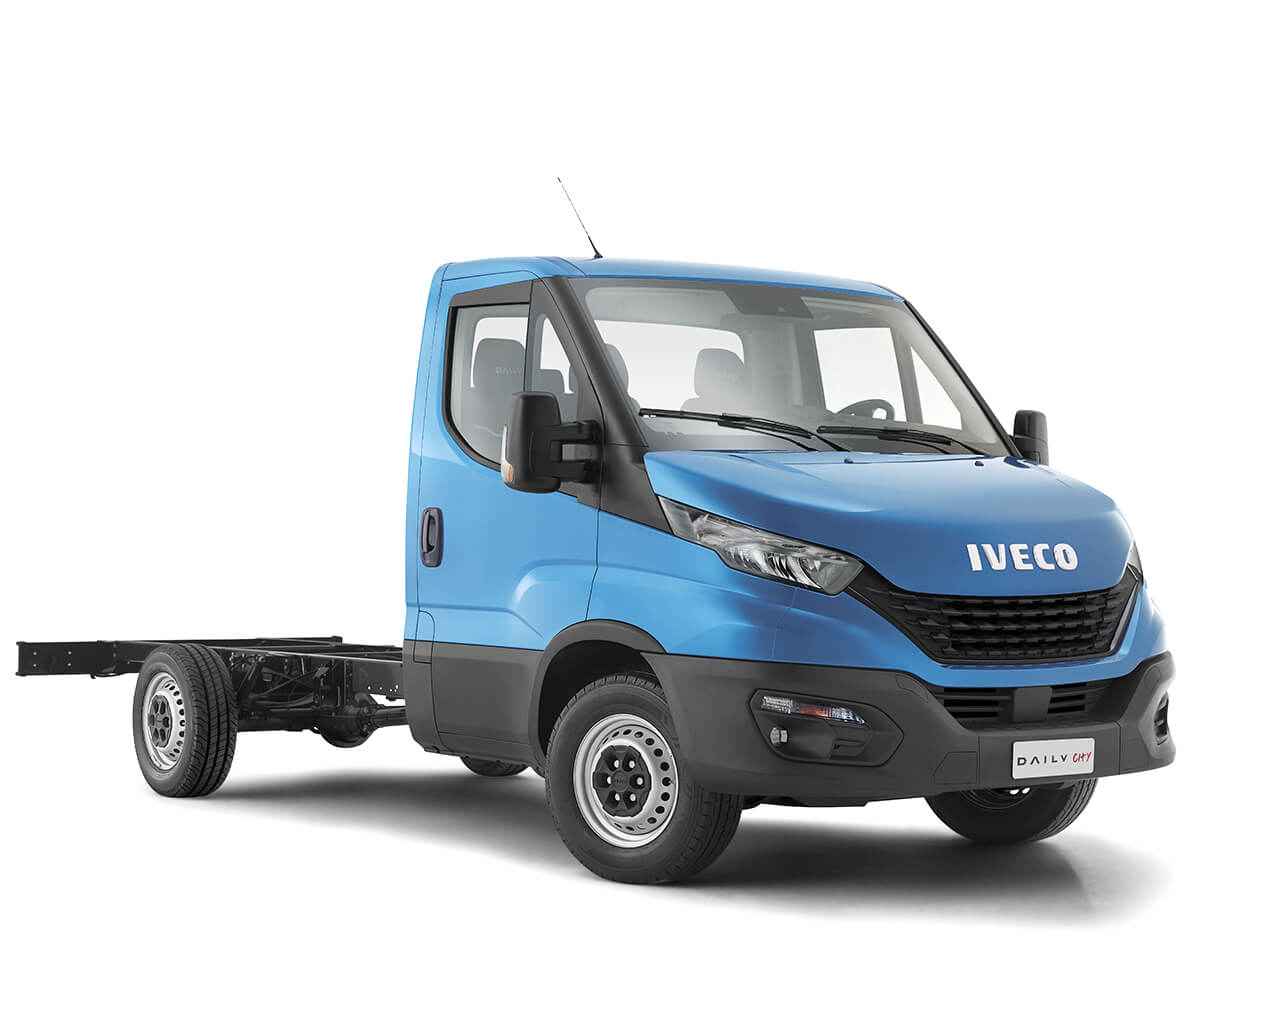 cover-home-006-caminhao-iveco-daily-city-chassi